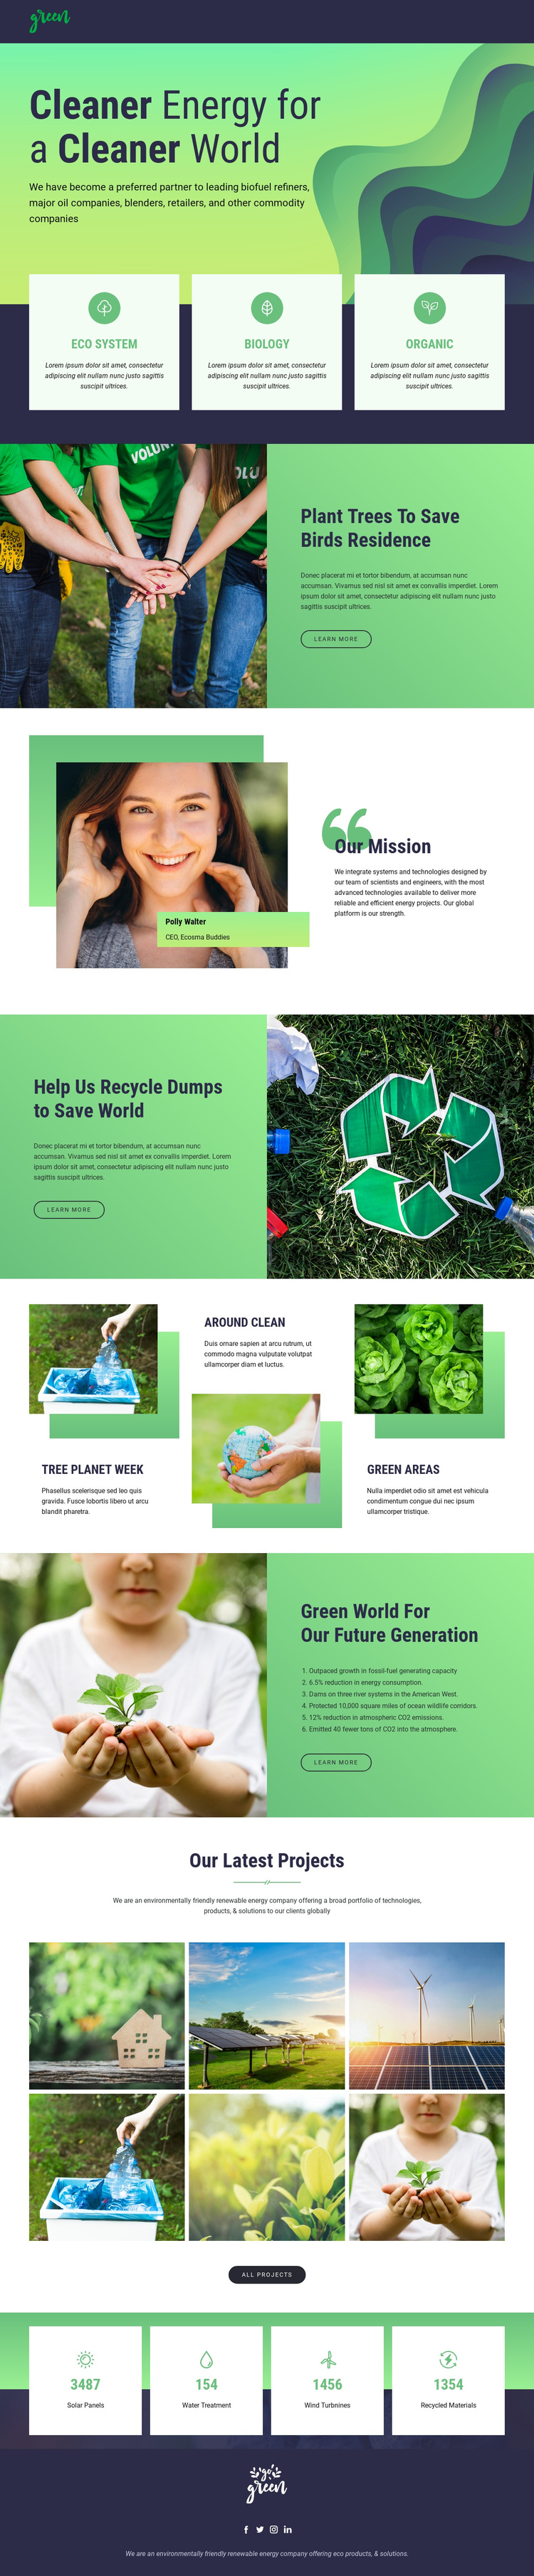 Clean energy to save nature Joomla Template